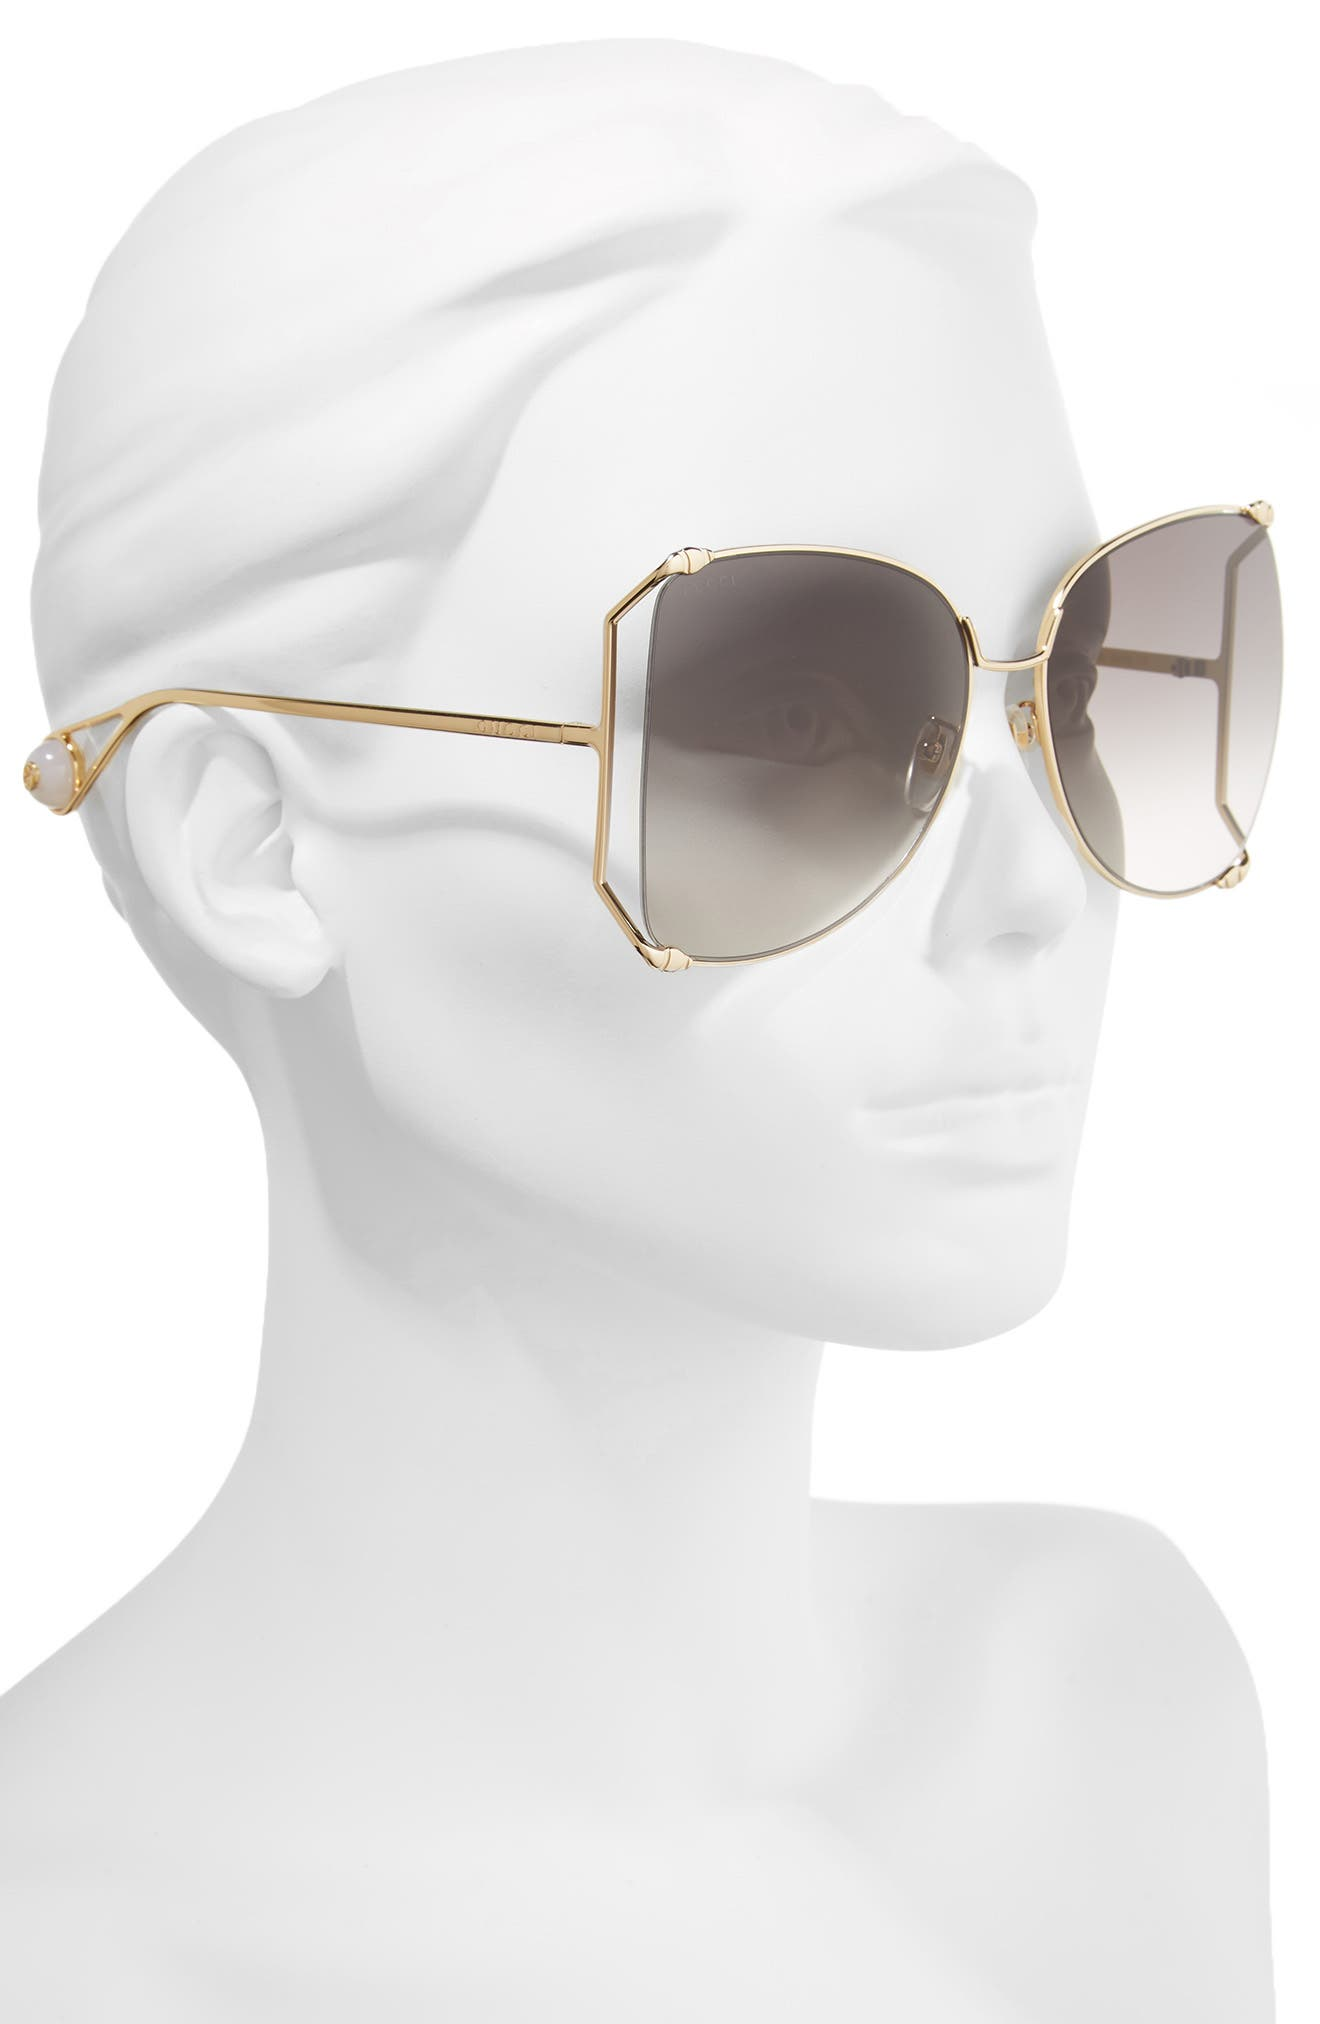 GUCCI, 63mm Gradient Oversize Butterfly Sunglasses, Alternate thumbnail 2, color, GOLD/ GRADIENT GREY